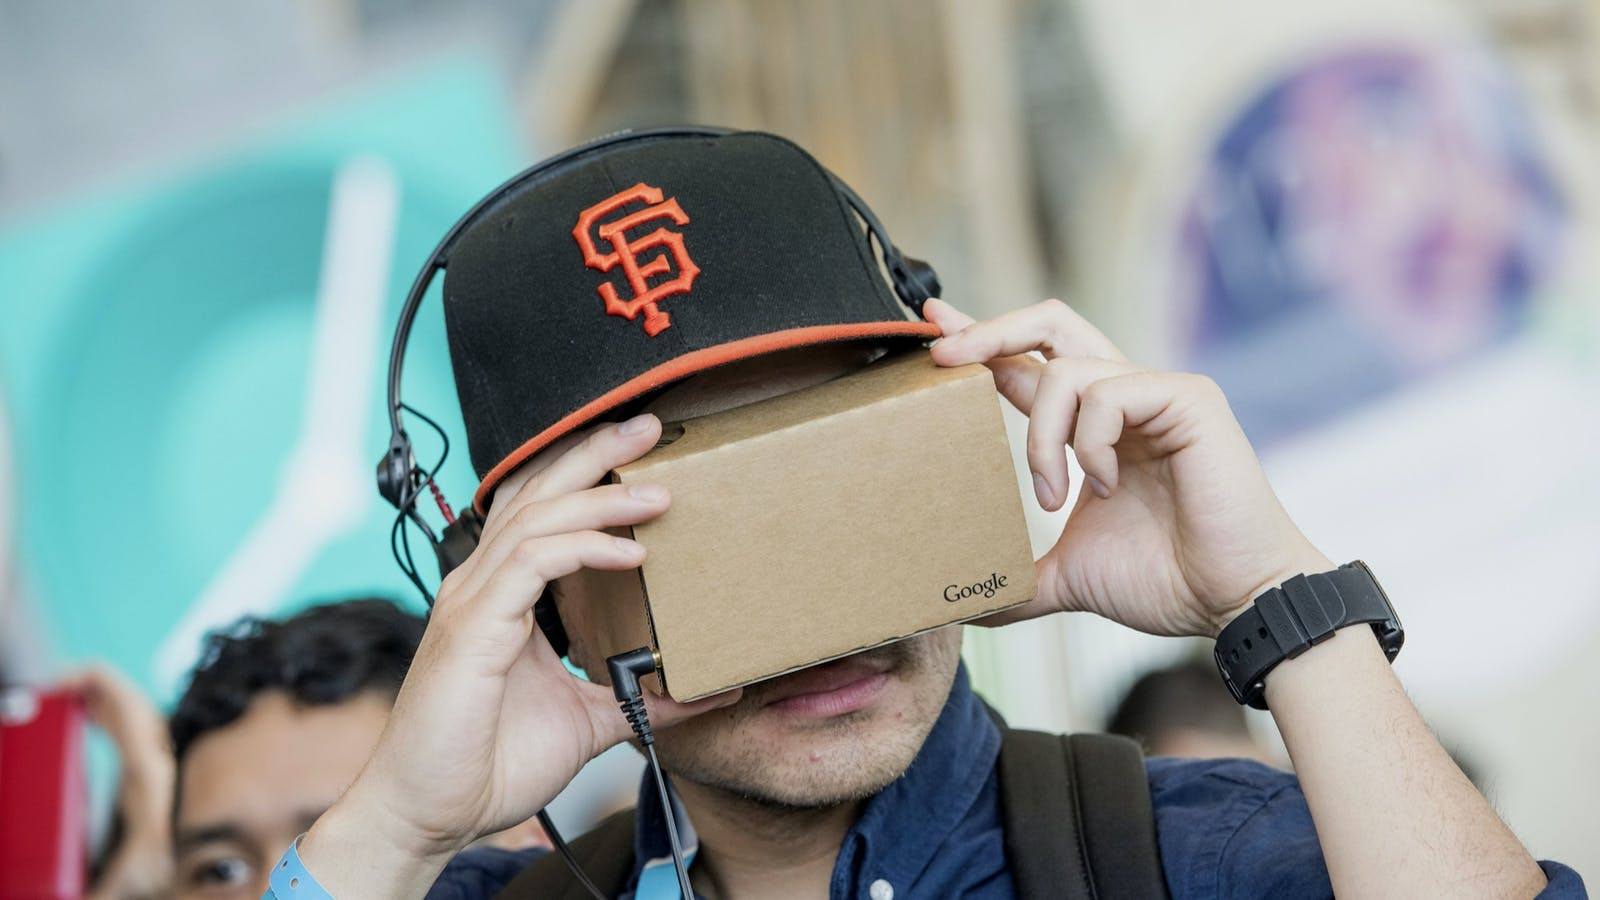 A Google Cardboard VR viewer in 2015. Photo by Bloomberg